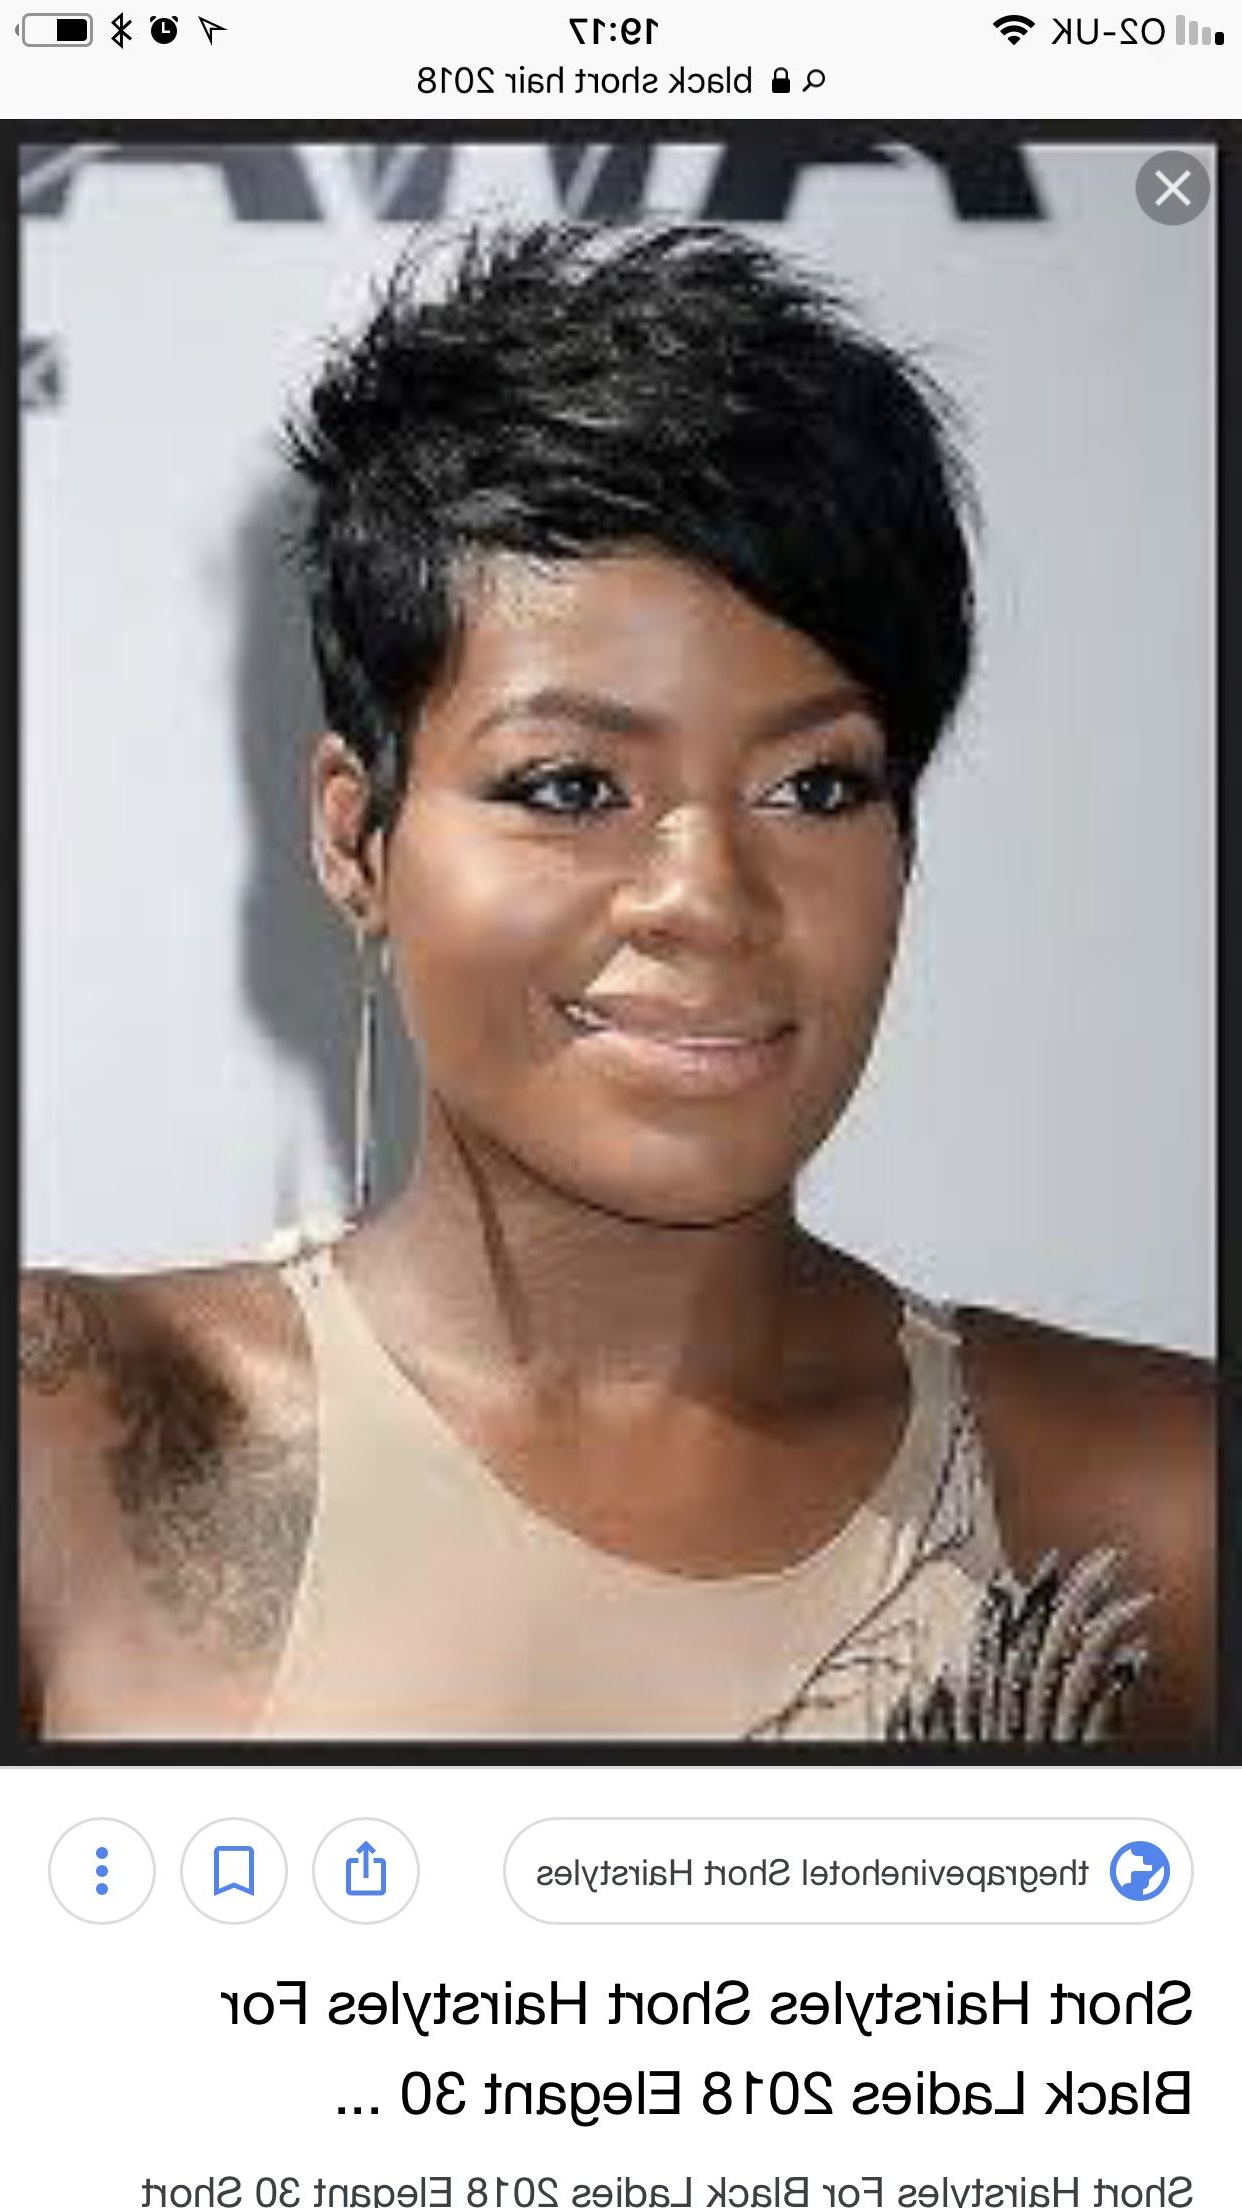 Pincaptain69 On Black Short Hairstyles In 2018 | Pinterest Throughout Black Short Hairstyles (View 24 of 25)